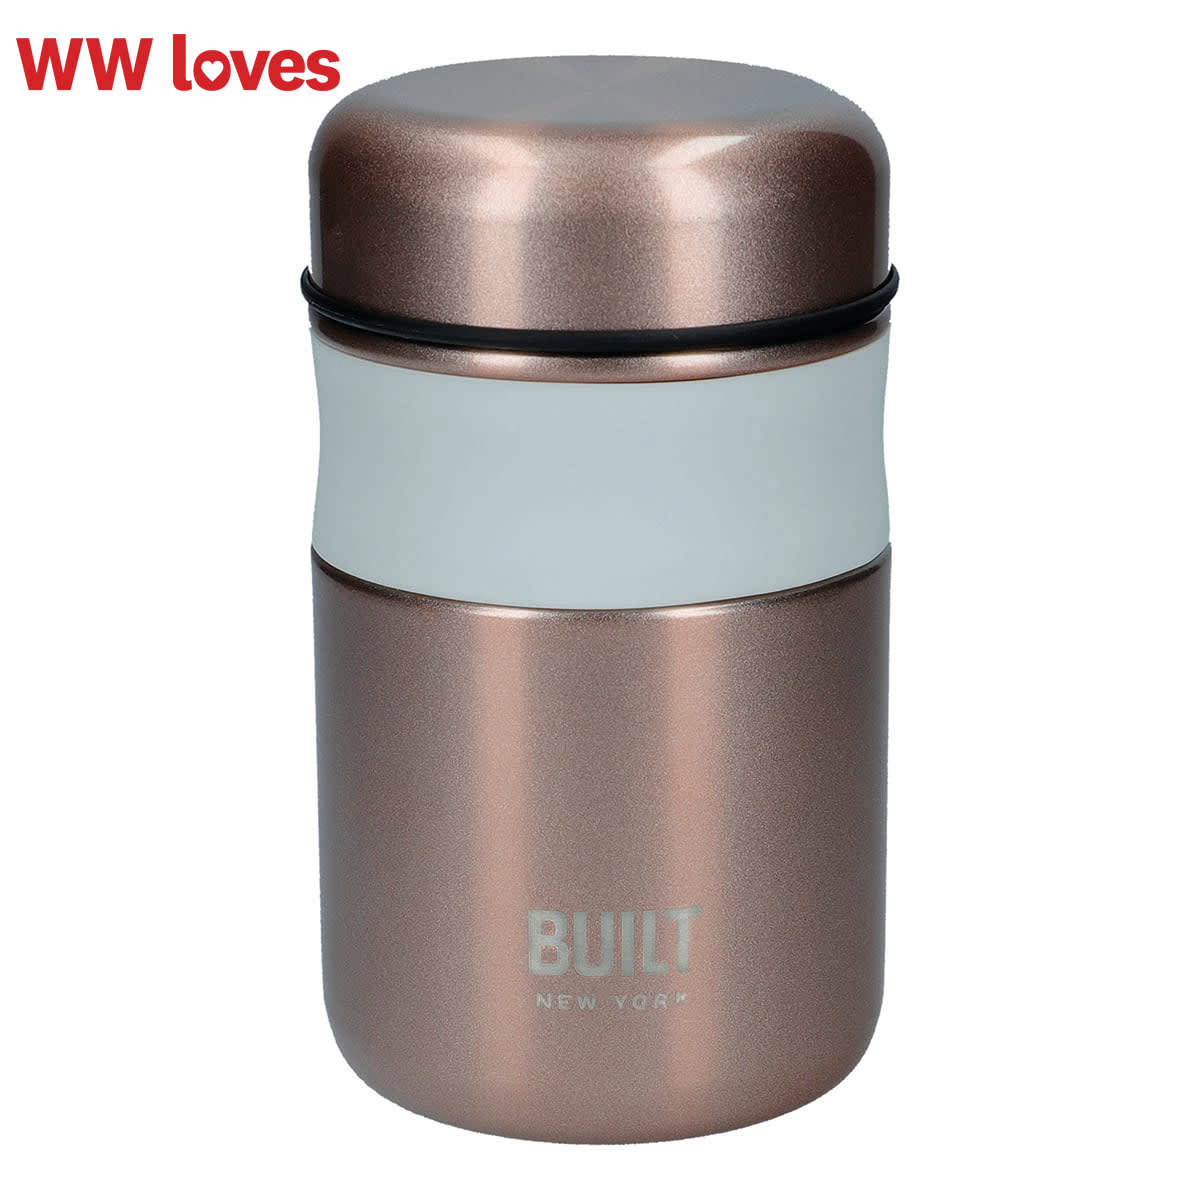 """Built 490ml Food Flask, colour midnight blue, reusable food flask, leaf proof, BPA free, PVC free, Phthalates Free, 9cm x 15.5cm, keeps food hot for 6 hours and chilled for 24 hours """